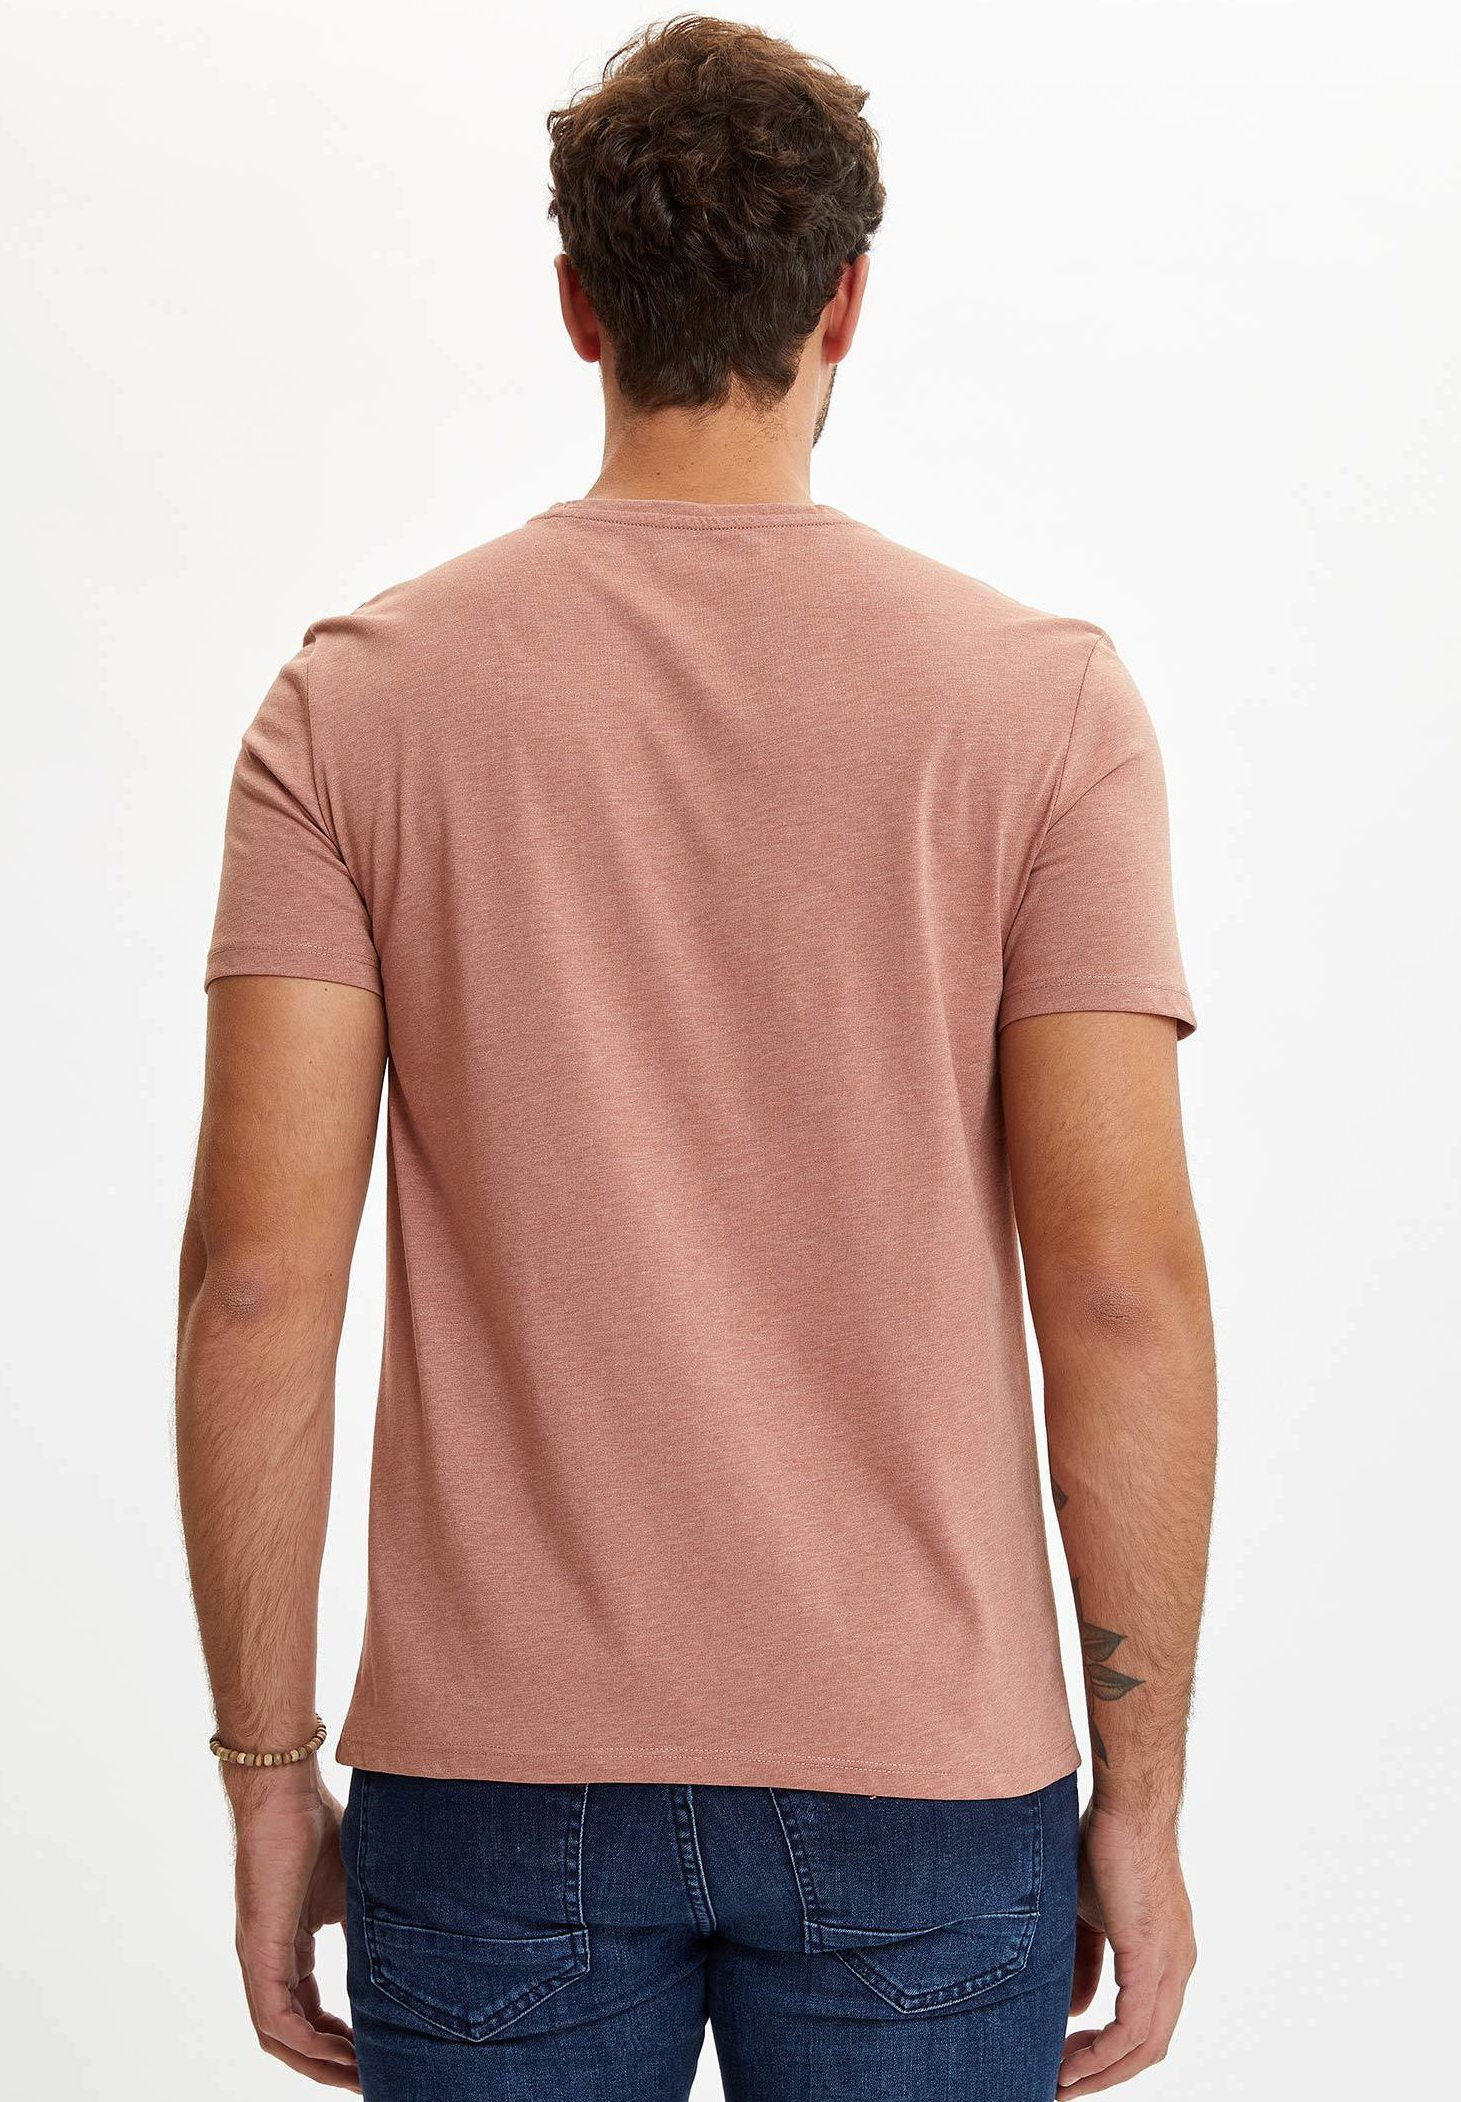 DeFacto Basic T-shirt - brown dOtRG